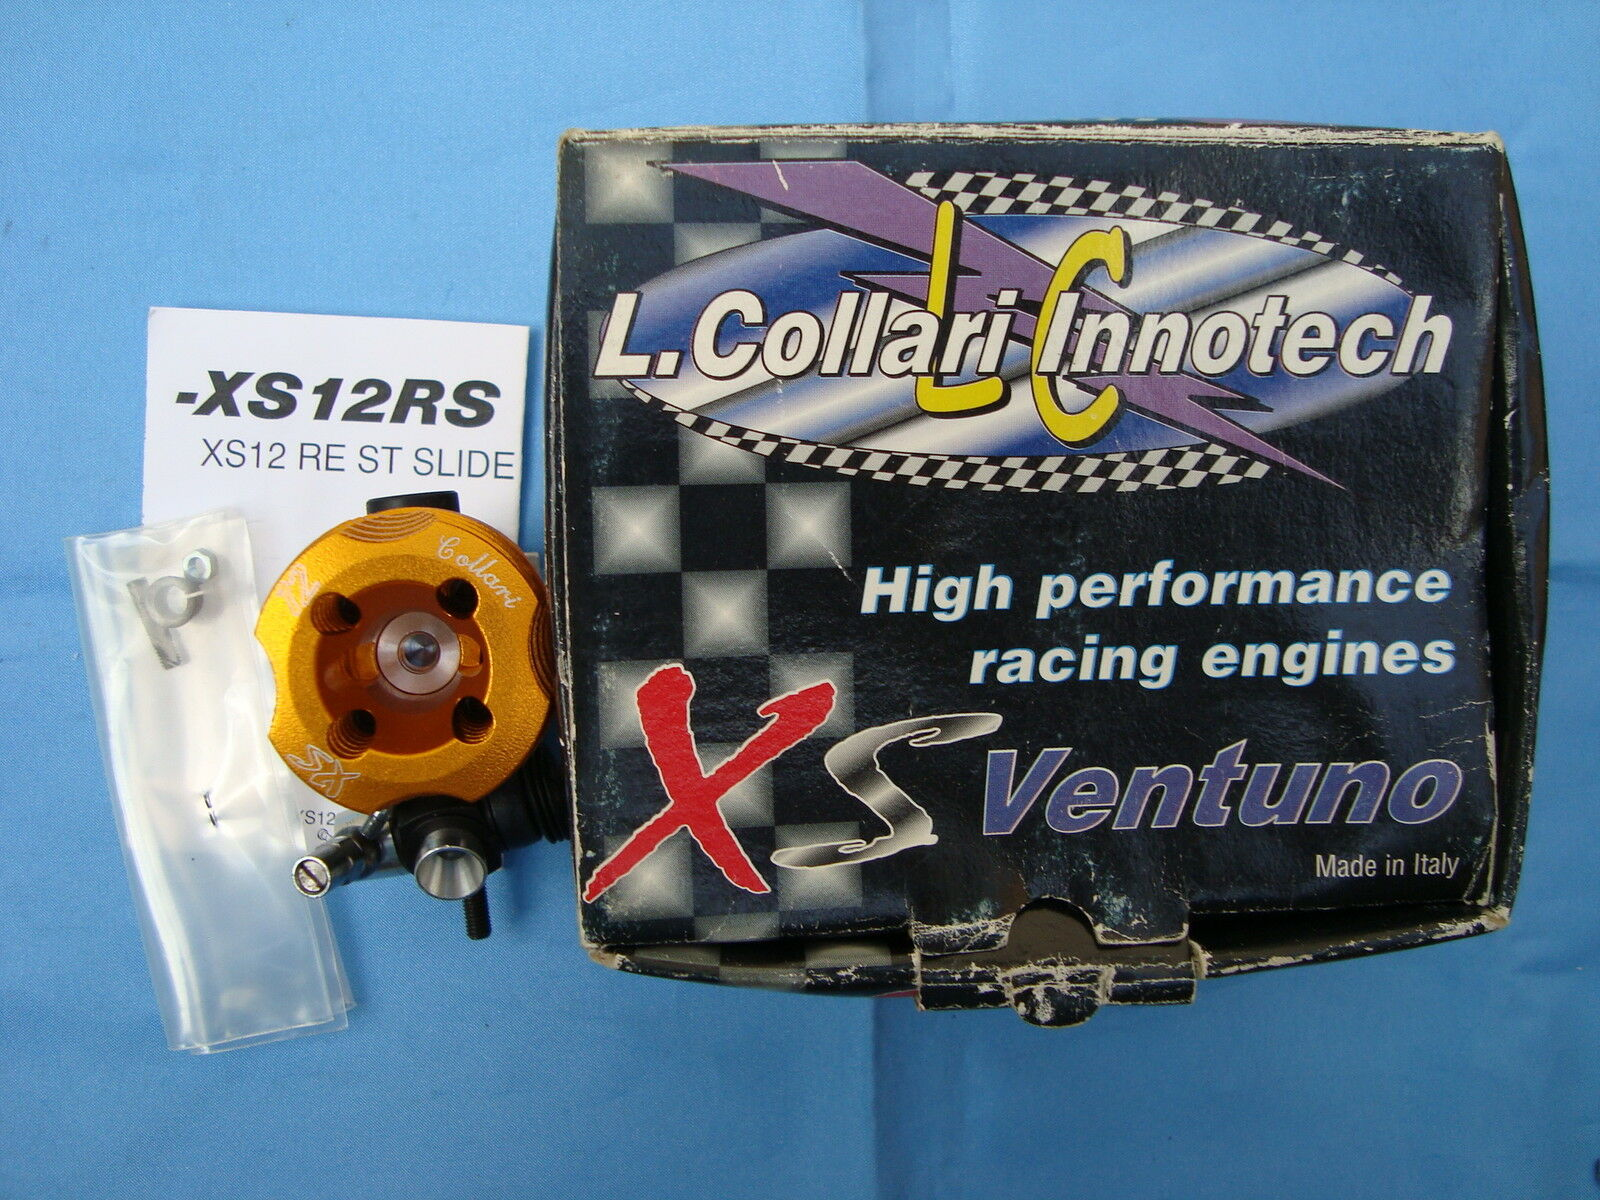 Brand New L.Collari Innotech XS12RS High Performance Racing Engine Made in ITALY